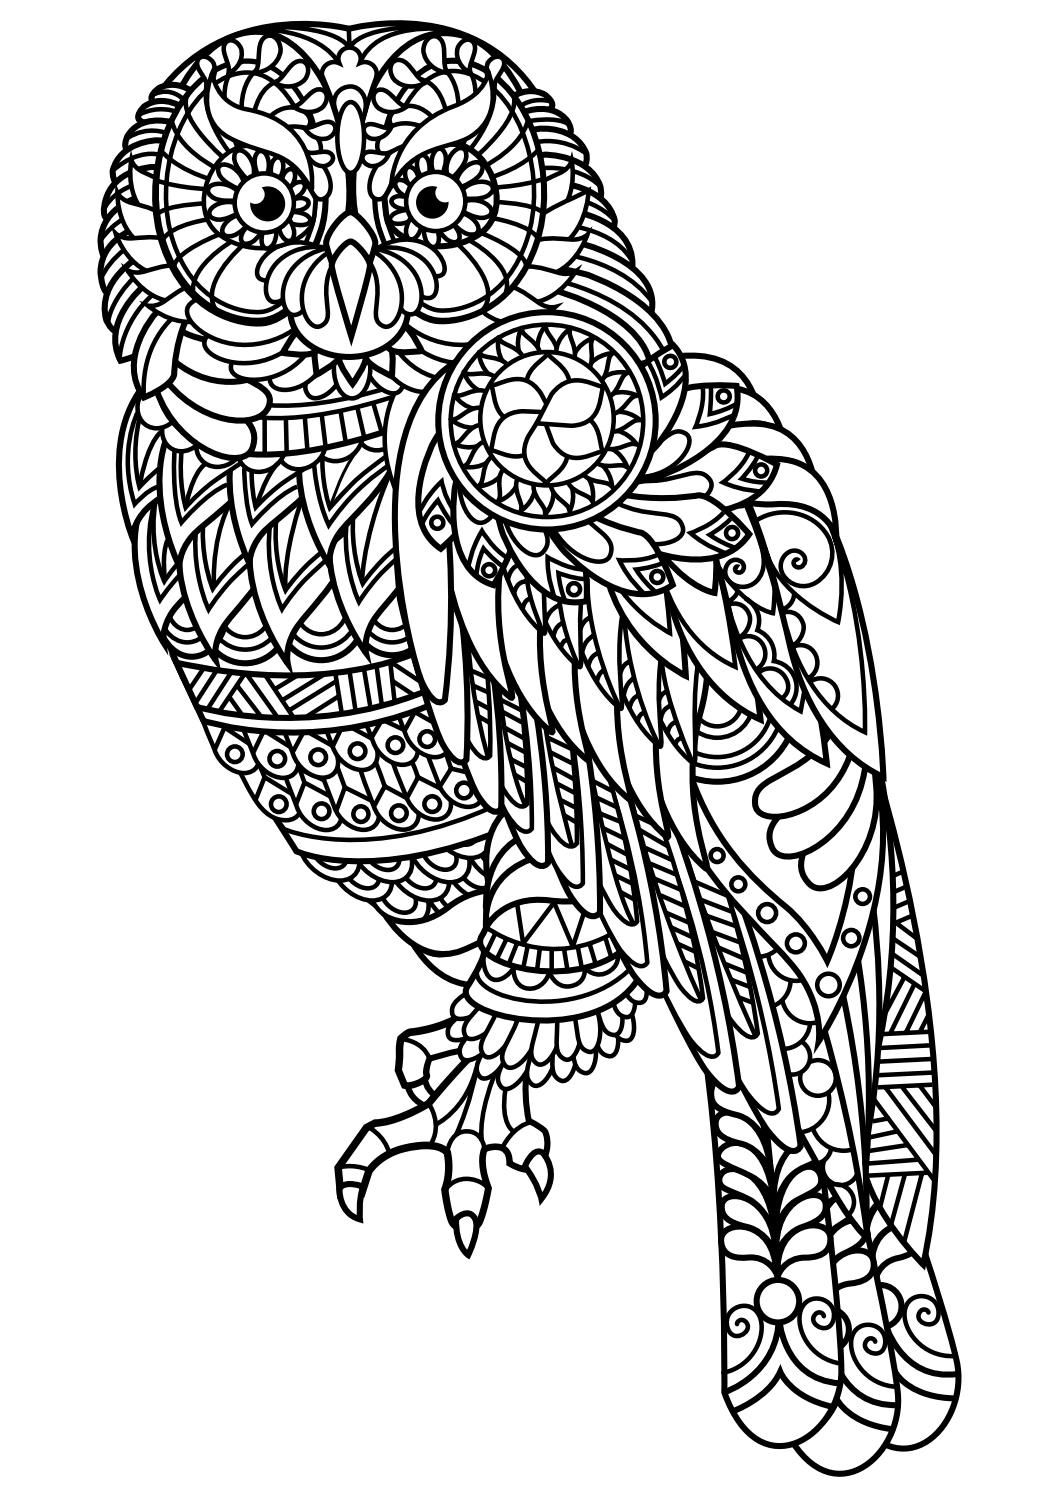 Animal Coloring Pages Pdf Bird Coloring Pages Animal Coloring